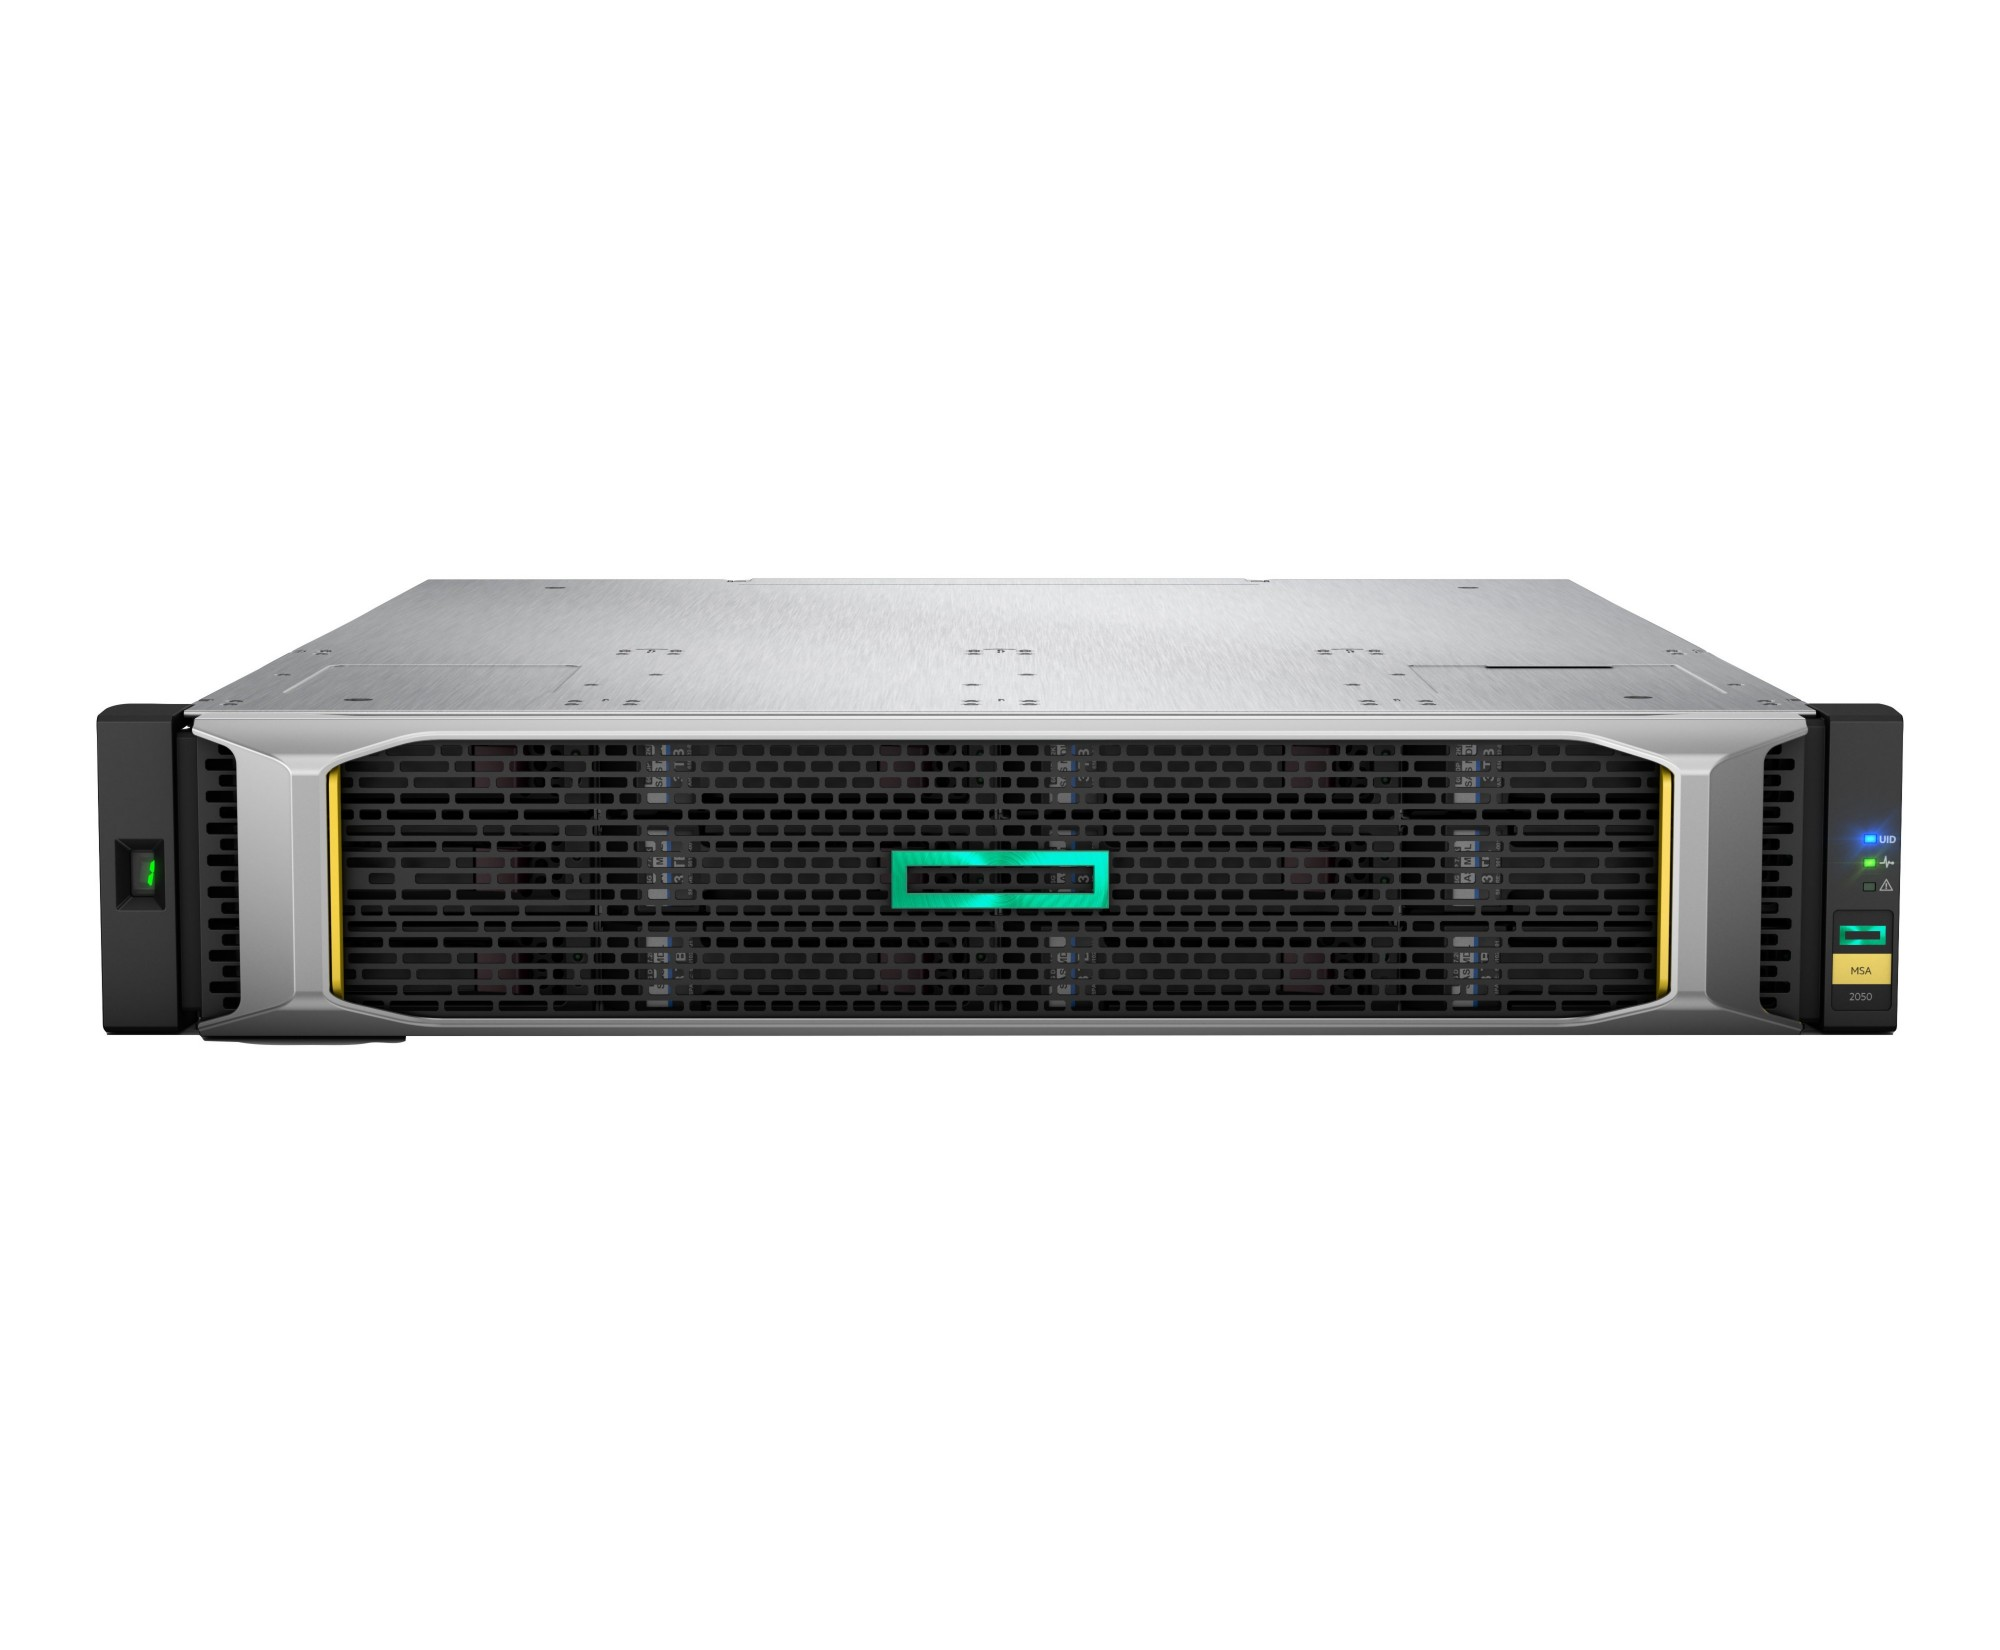 HPE Q1J28A MSA 2050 DISK ARRAY RACK (2U) BLACK